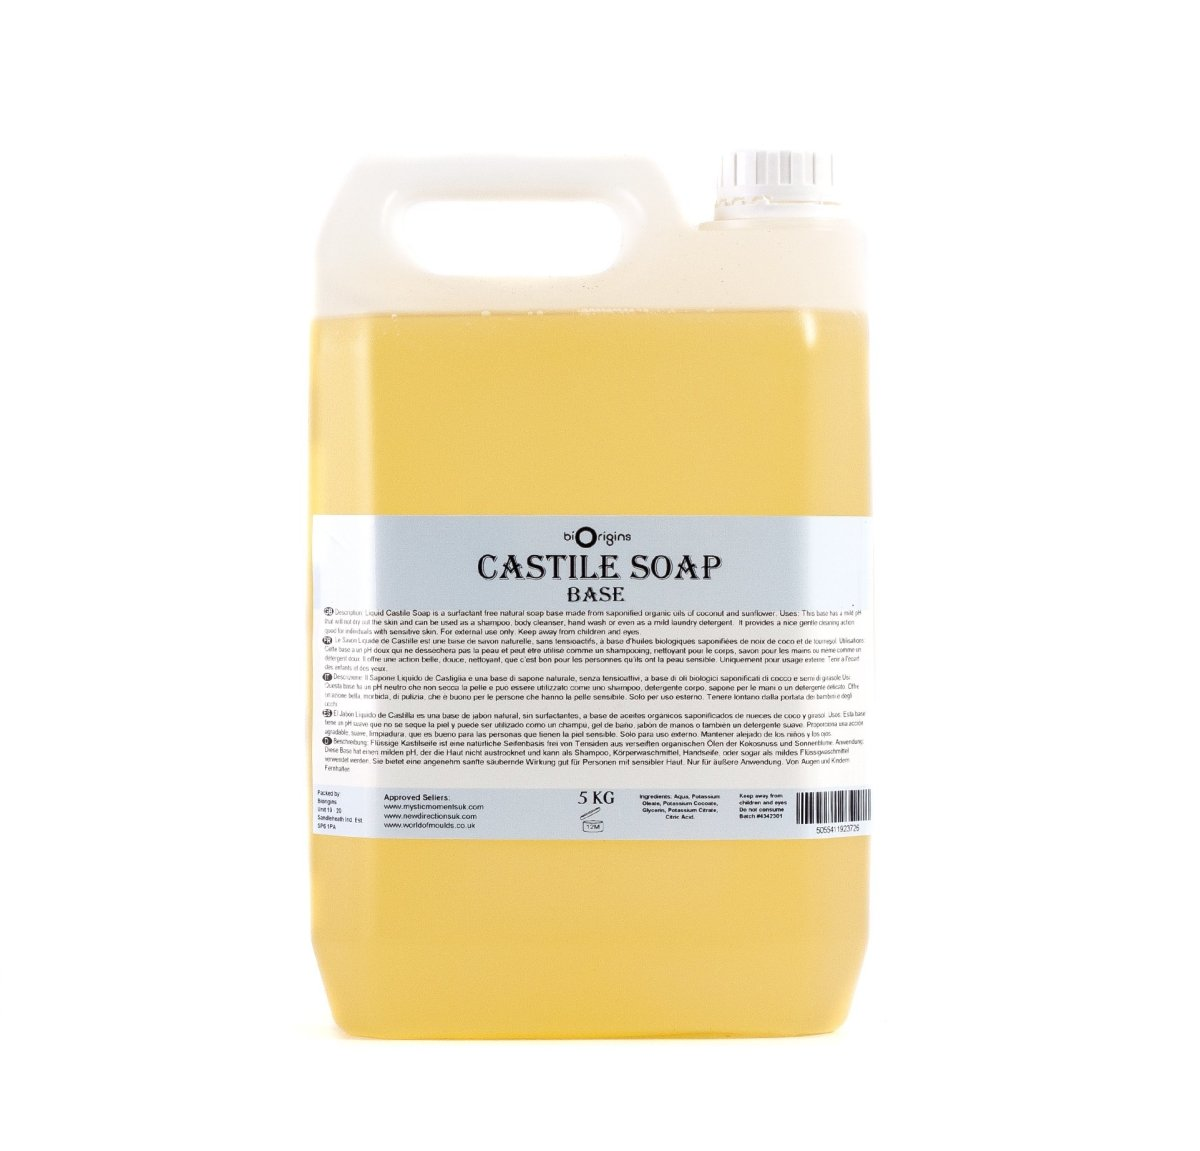 Castile Liquid Soap - Mystic Moments UK